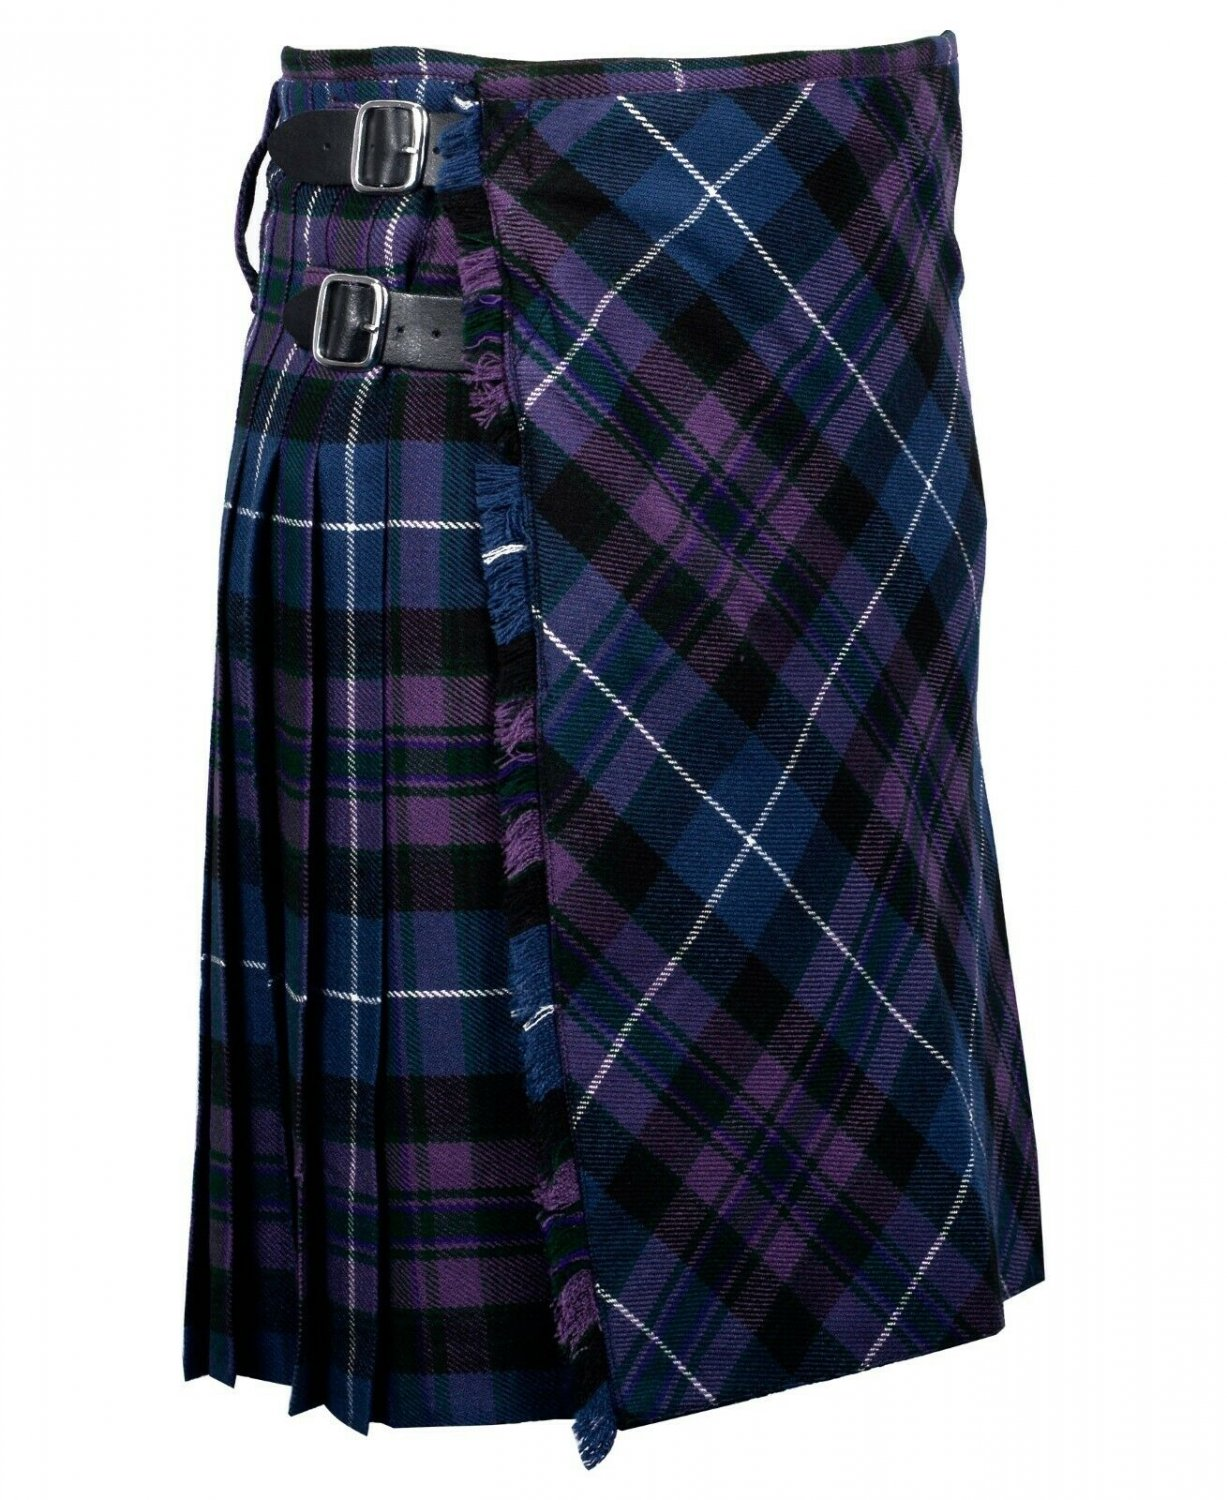 38 inches waist Bias Apron Traditional 5 Yard Scottish Kilt for Men - Pride of Scotland Tartan